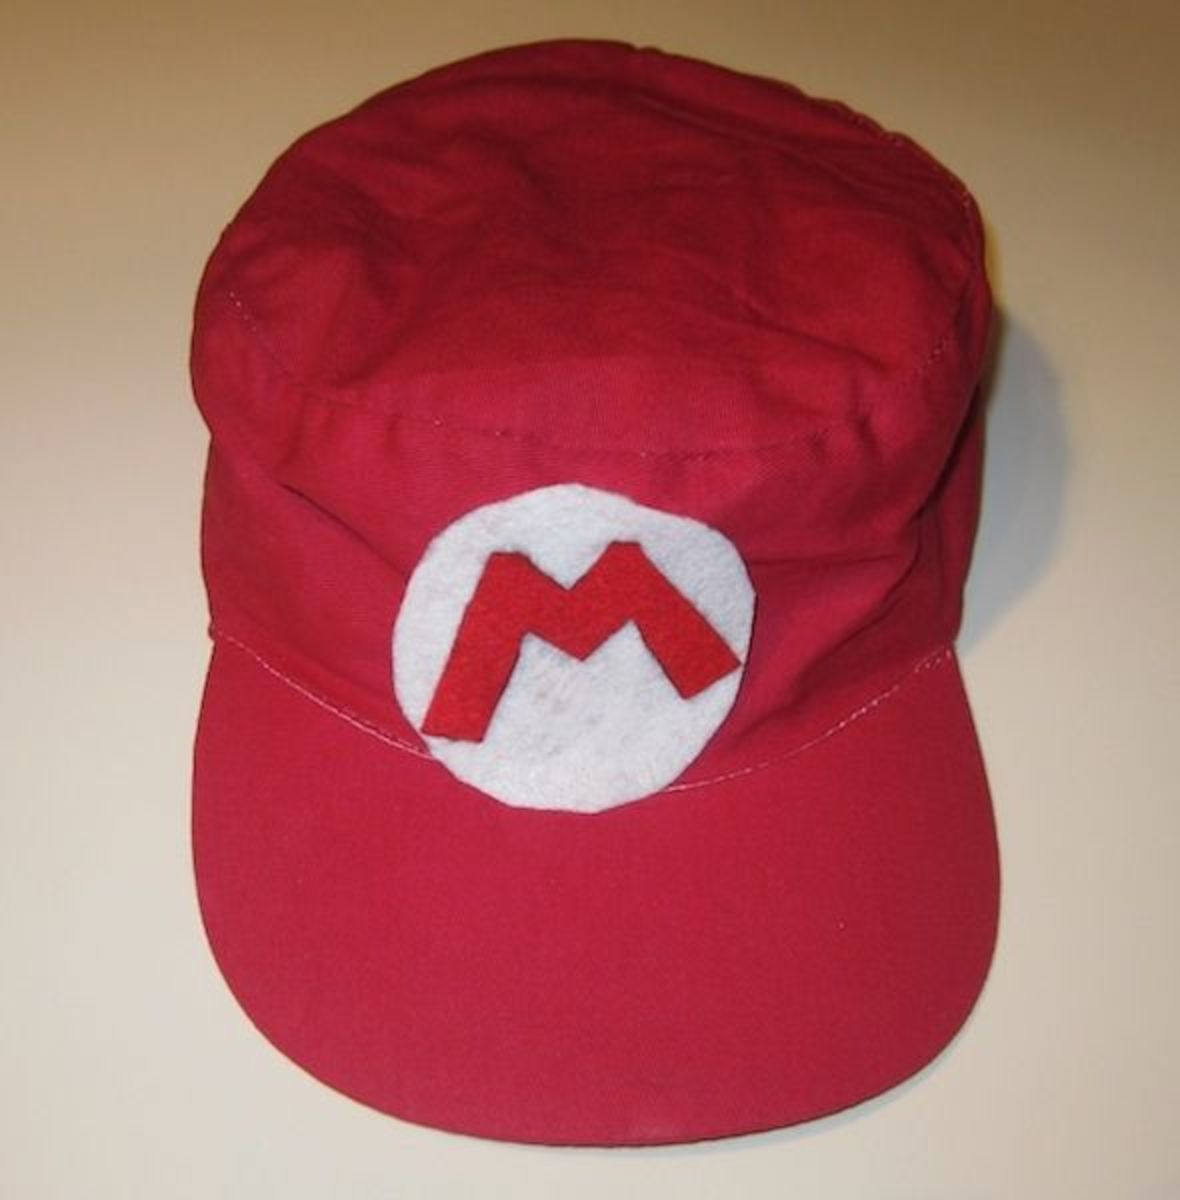 Party Favor  Mario Cap - Make a Mario Cap for every kid to wear during the  party and then take home e64eba665191